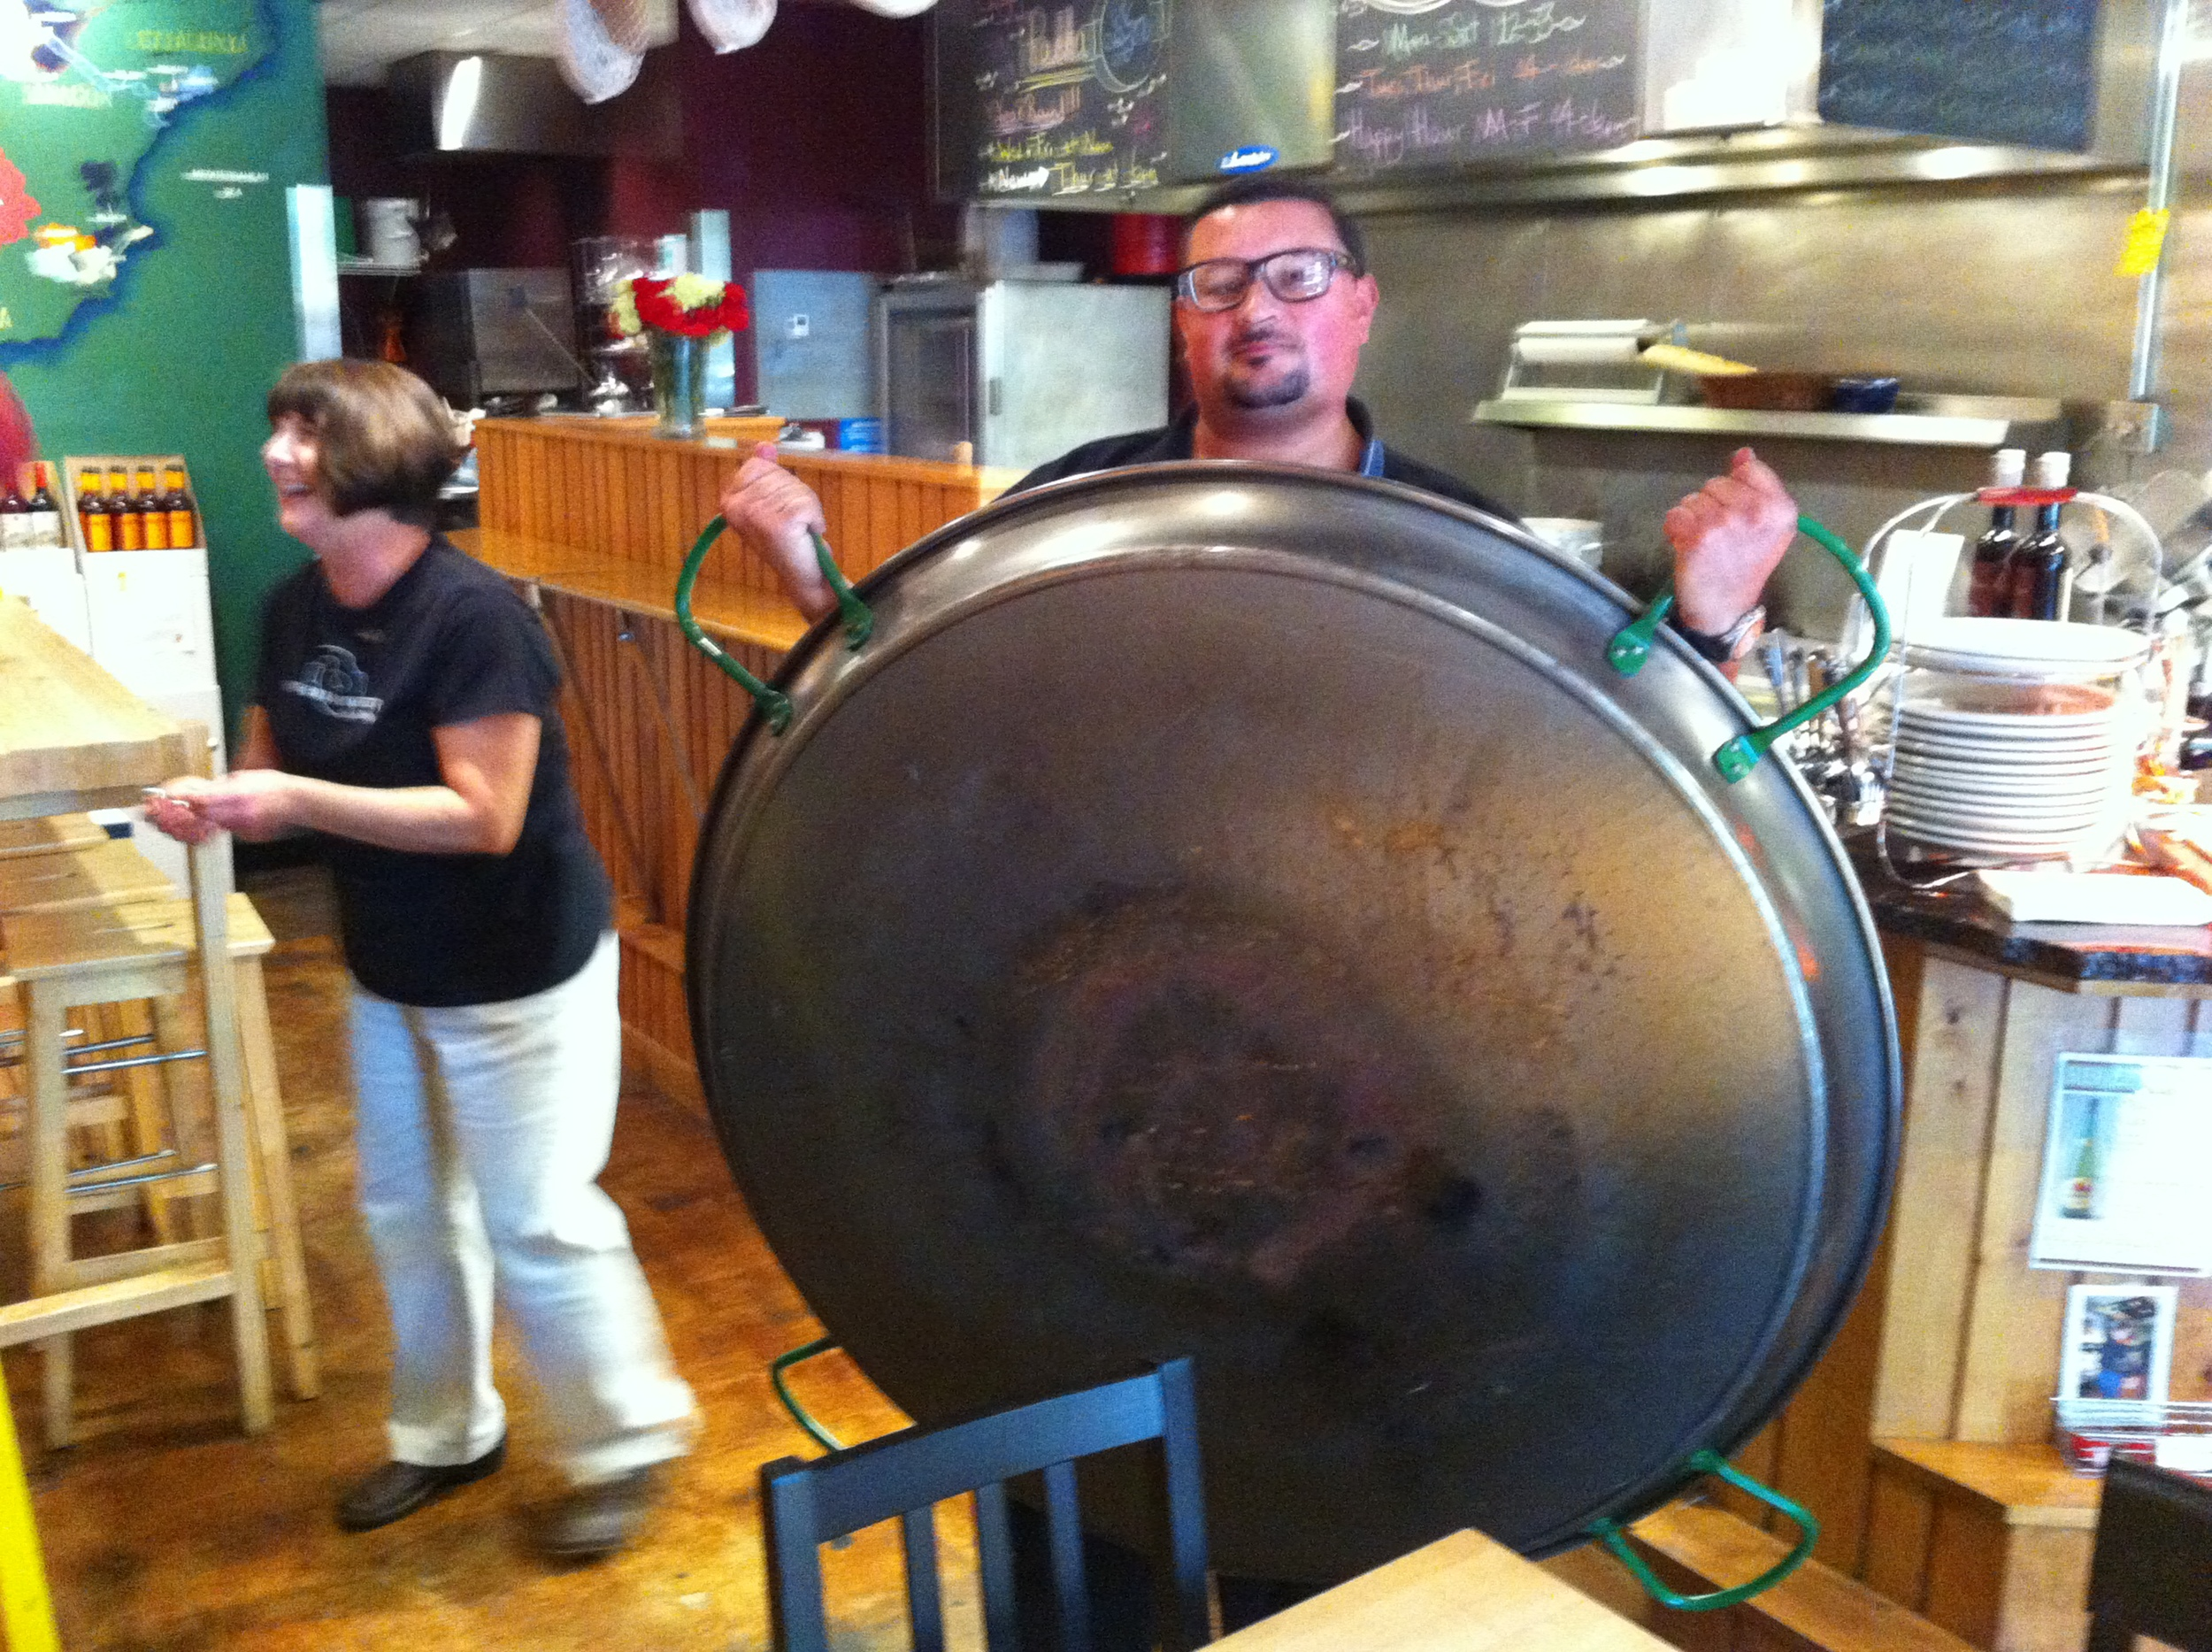 Paella pan is being removed from the ceiling to get ready for the evening feast.